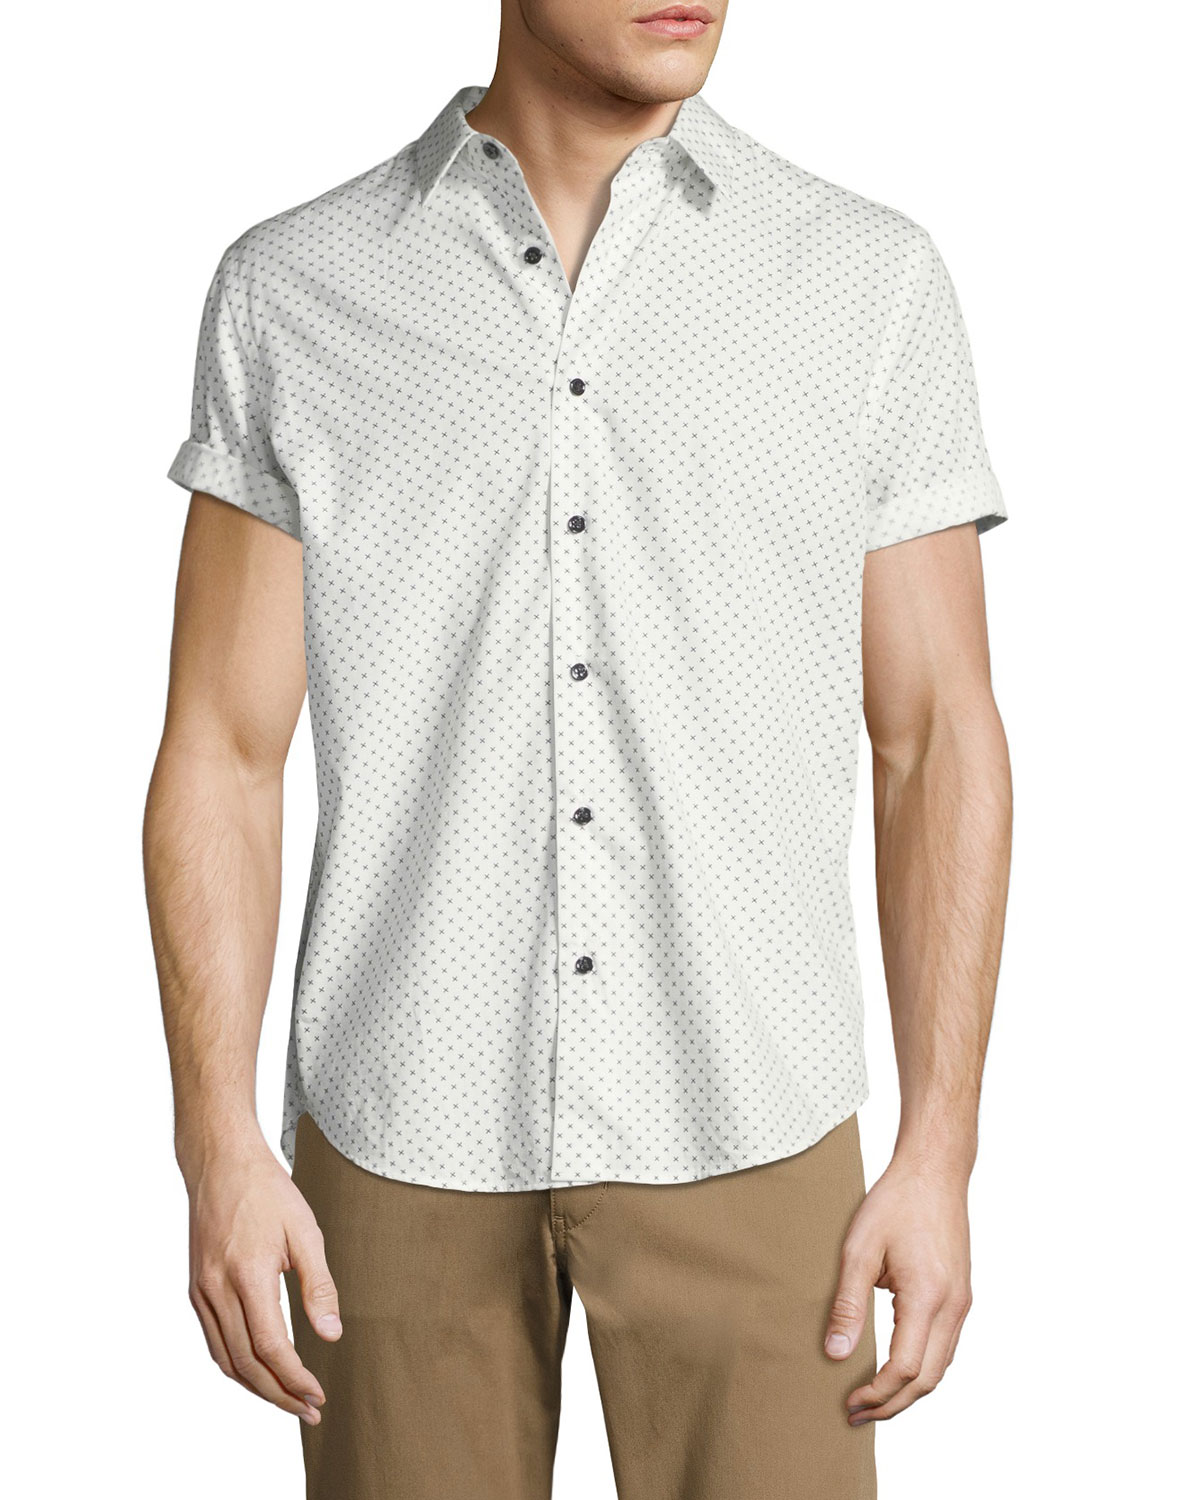 Stitch-Print Cotton Short-Sleeve Shirt